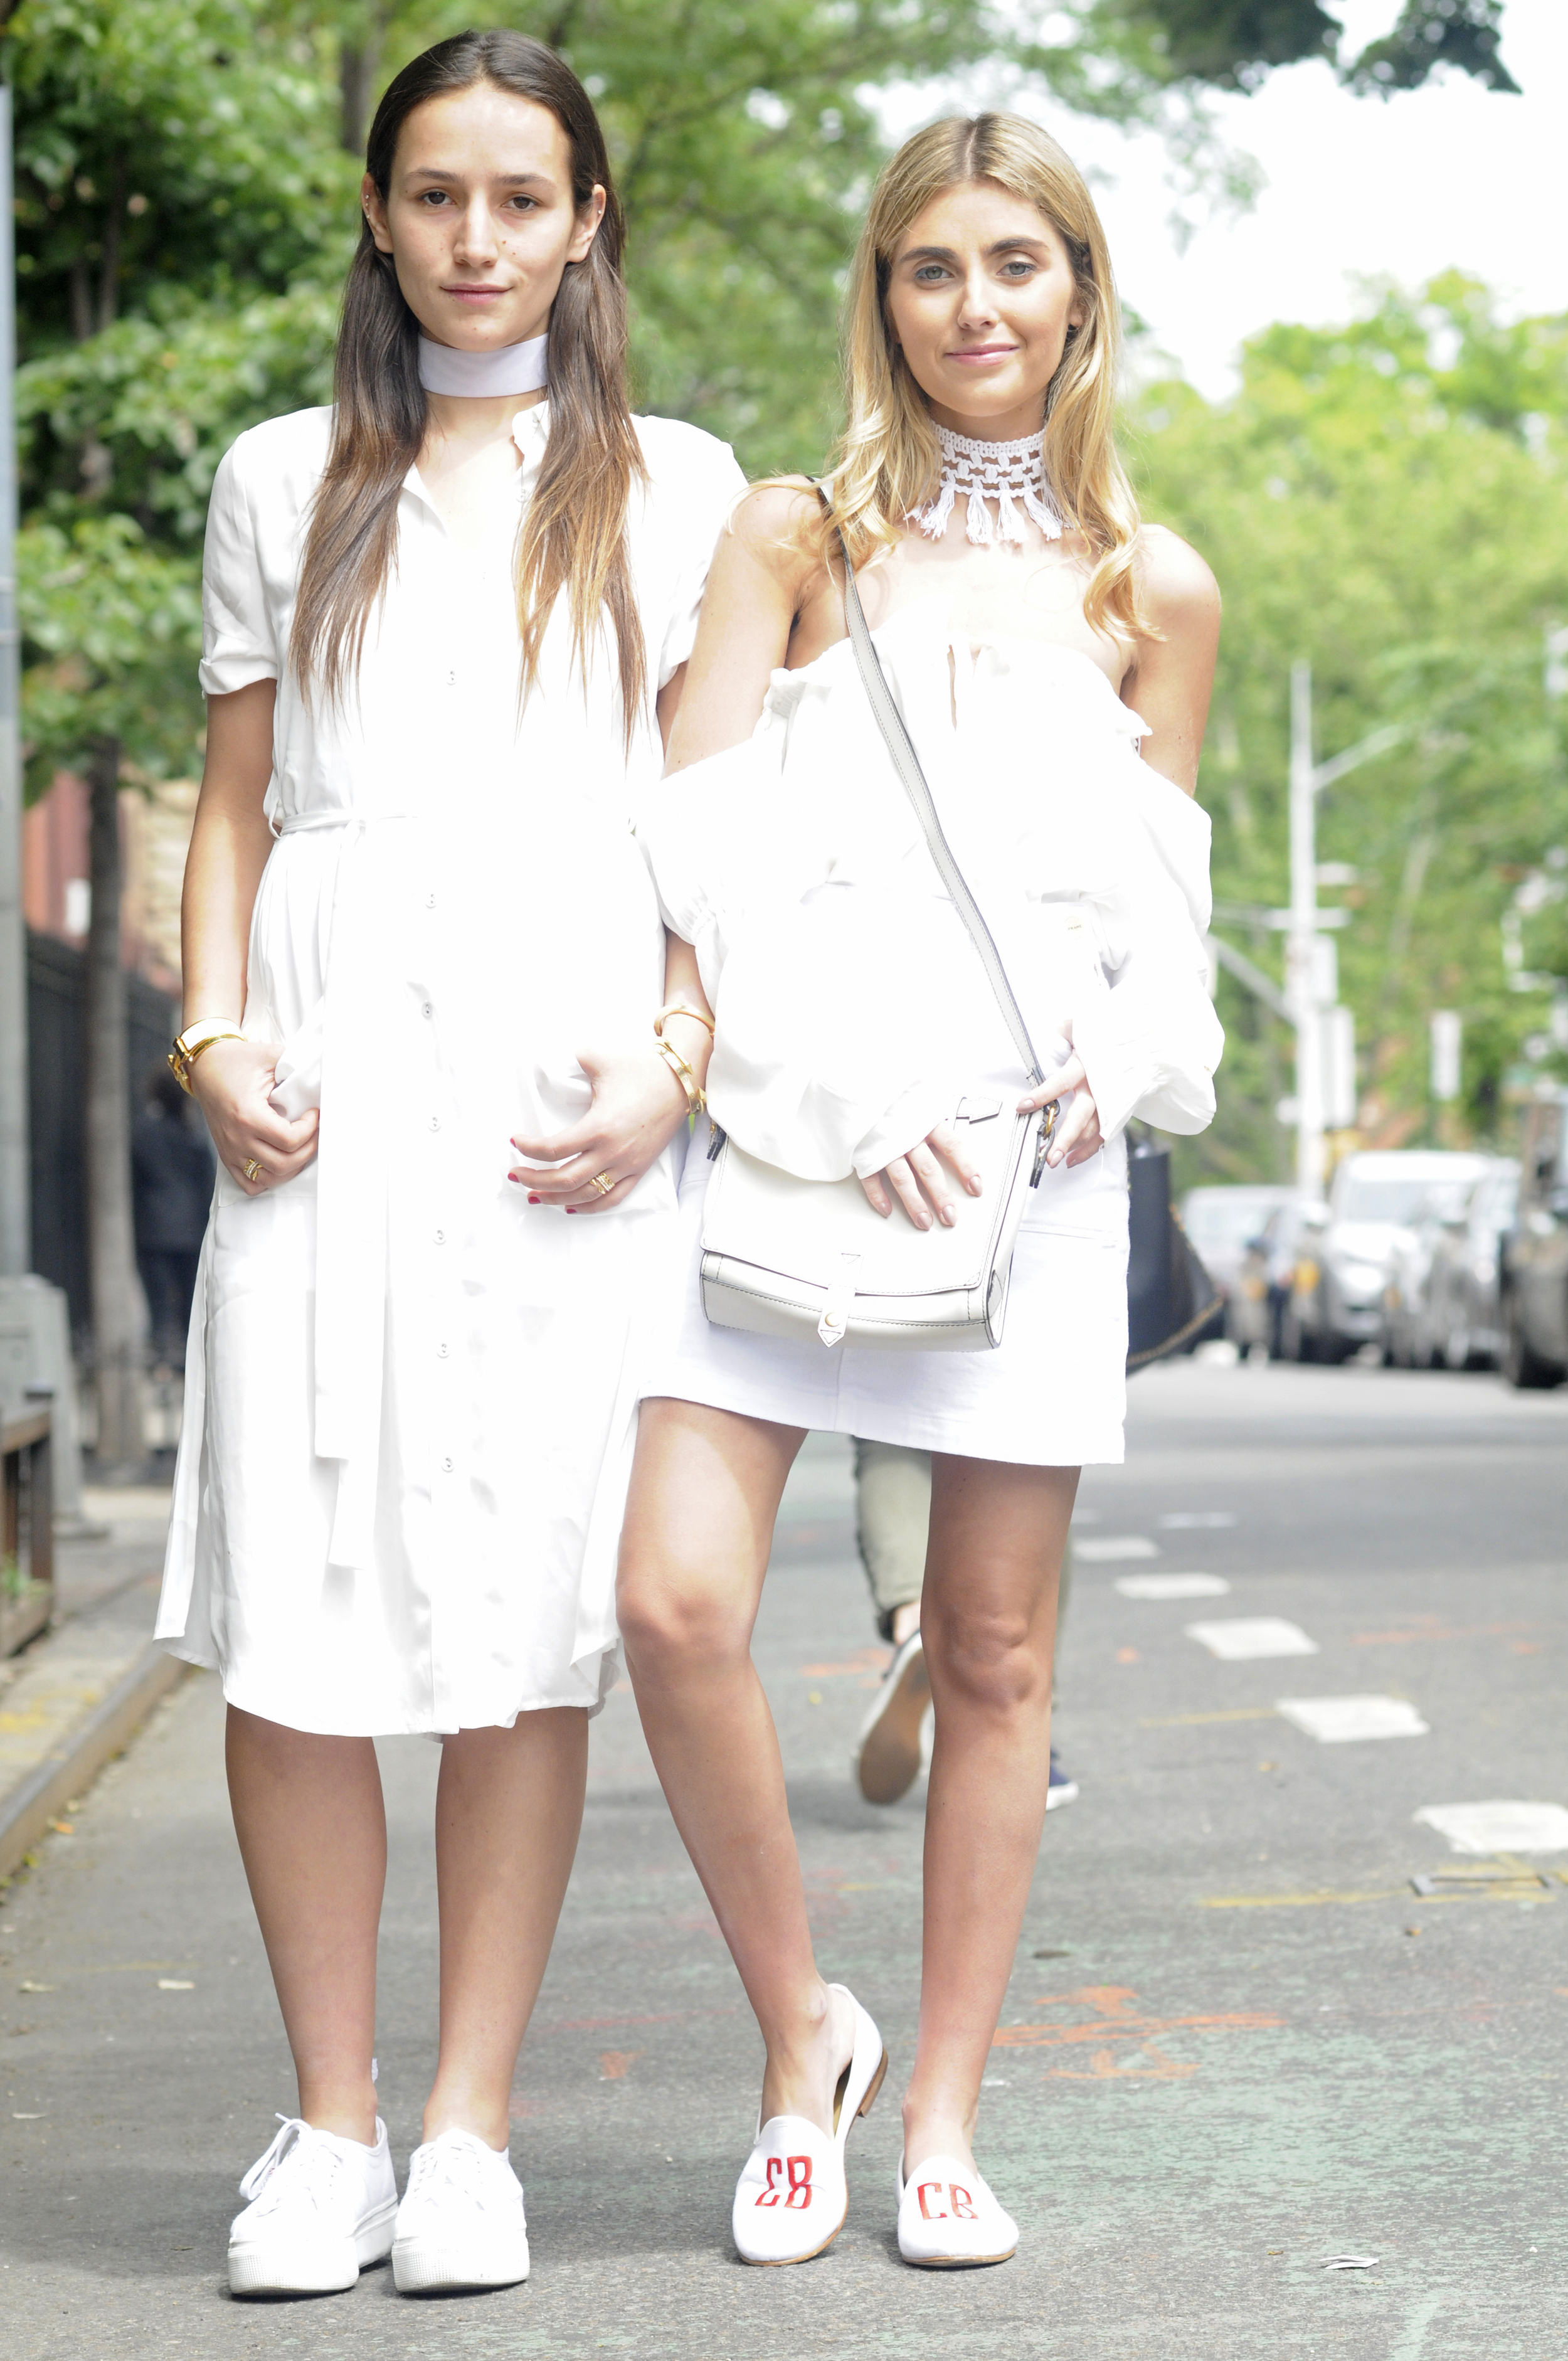 NYC BICKLEY SISTER FASHION BLOGGERS NYC STREET STYLE